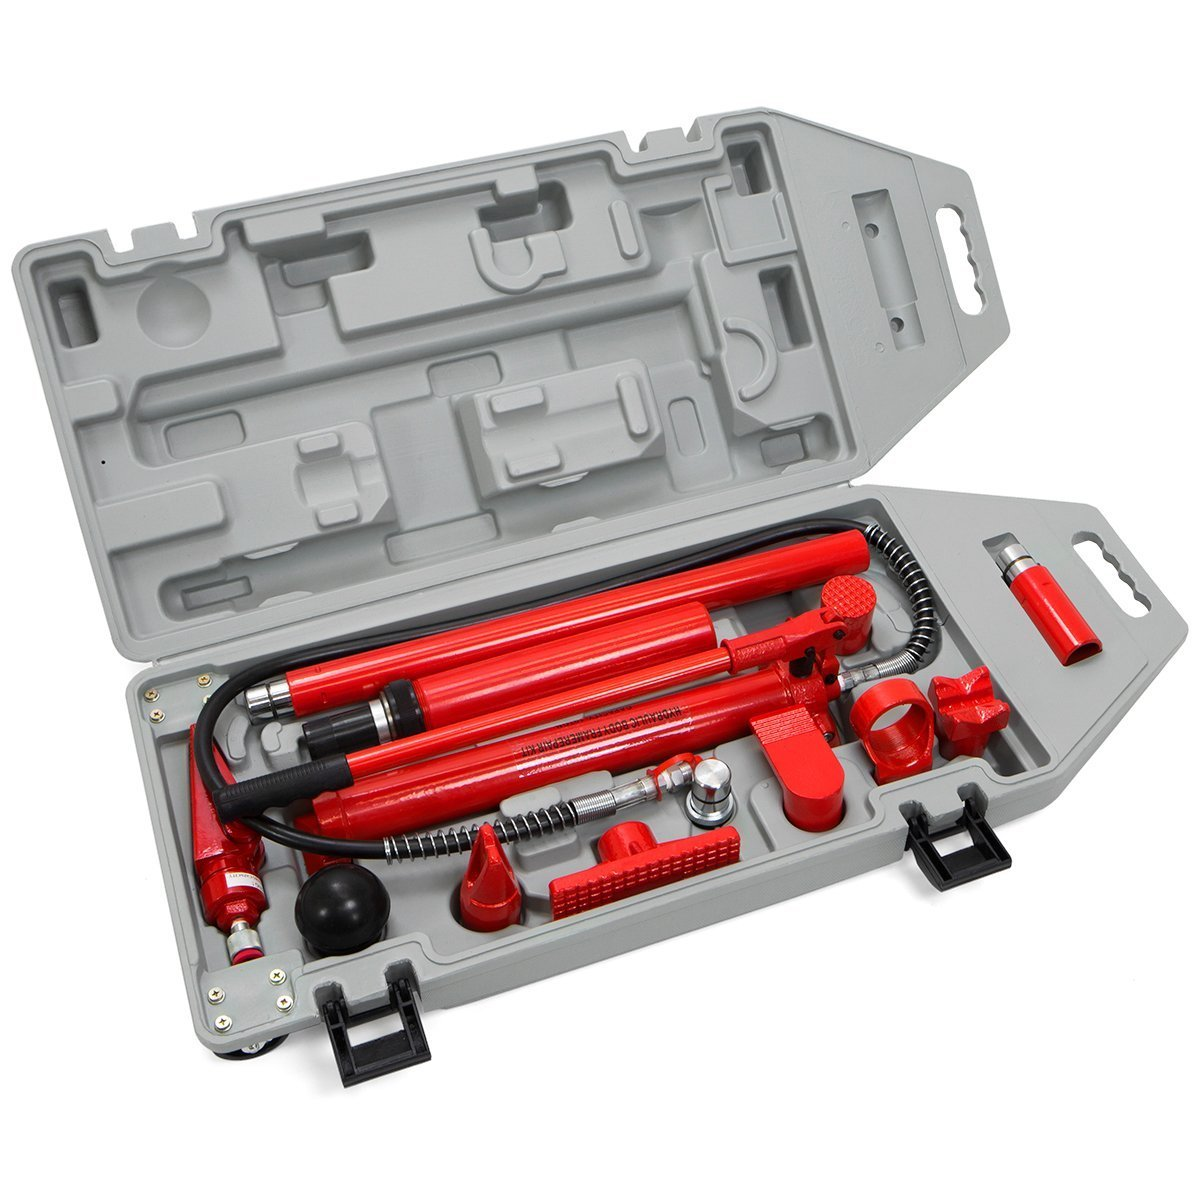 10 Ton Porta Power | Hydraulic Jack Air Pump Lift Ram Repair Tool Kit Auto Body